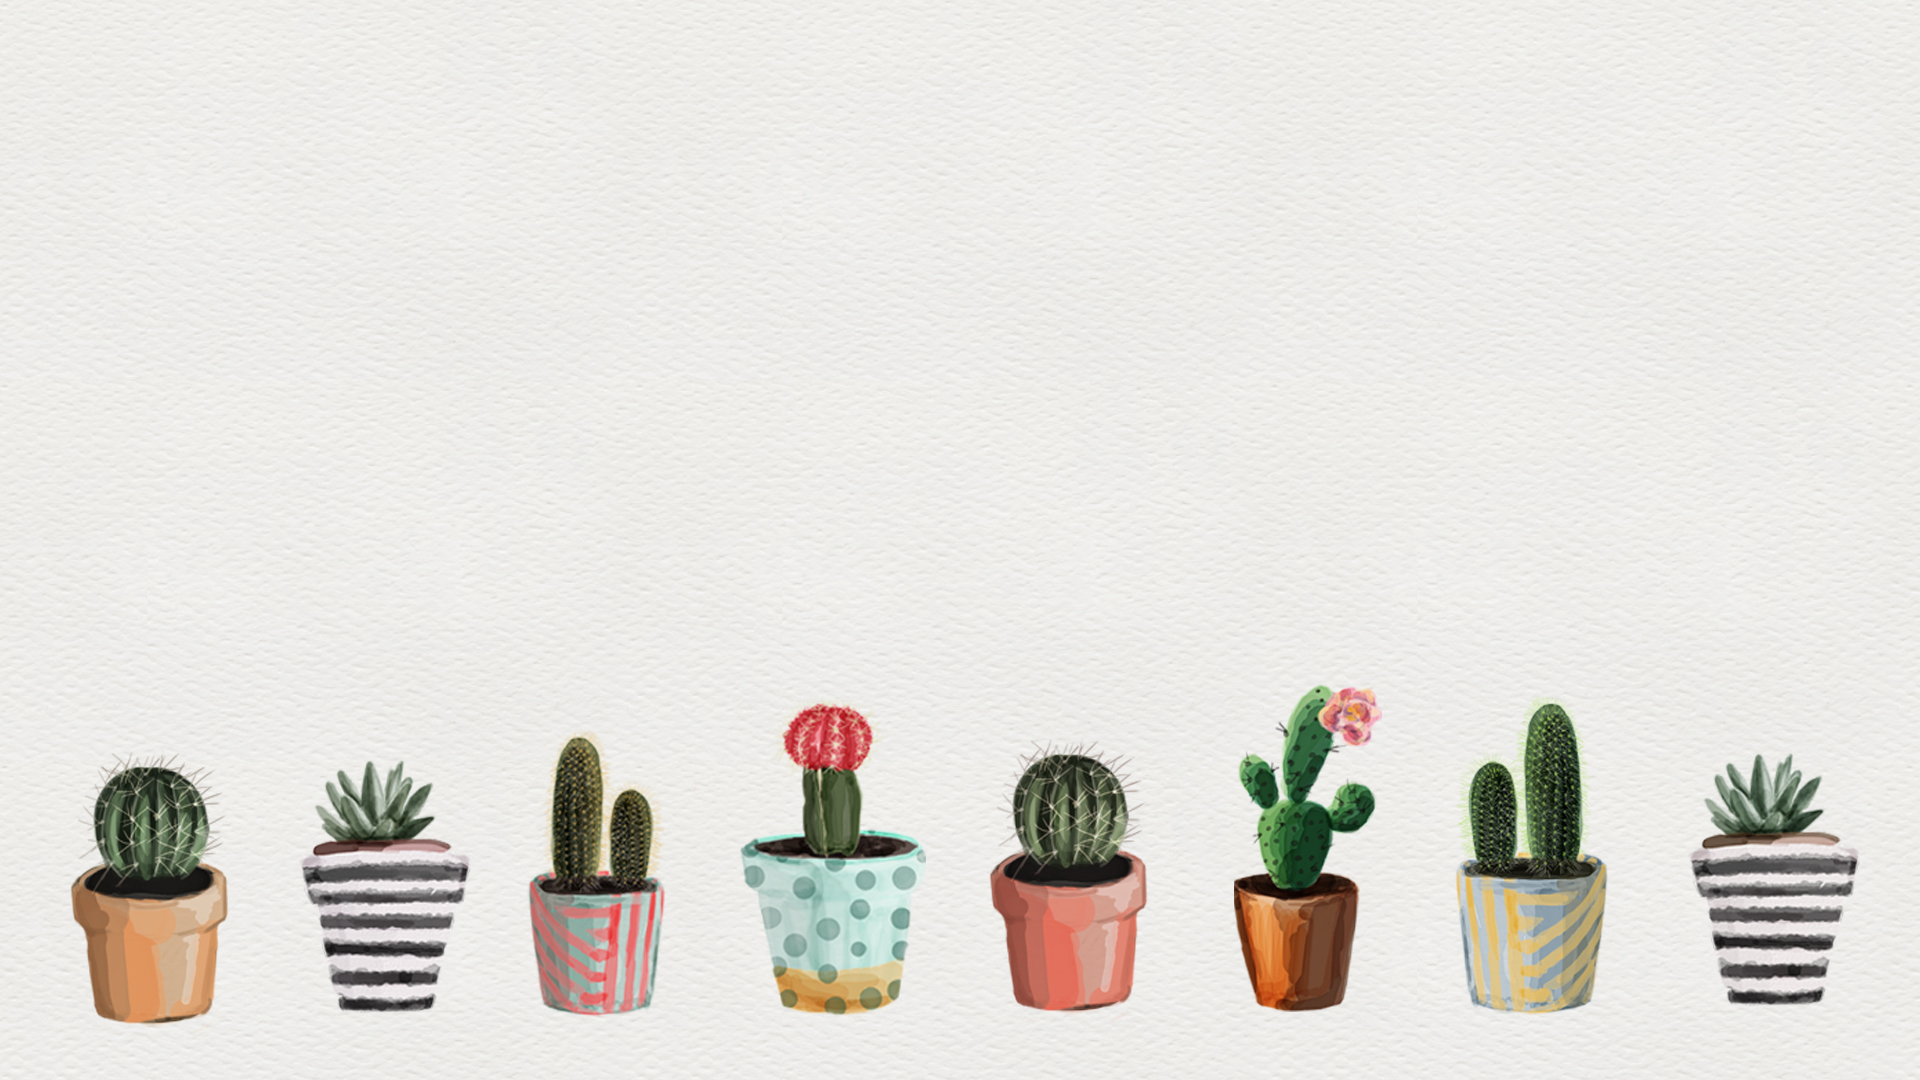 download the free digital wallpaper cacti love hd 1920a—1080